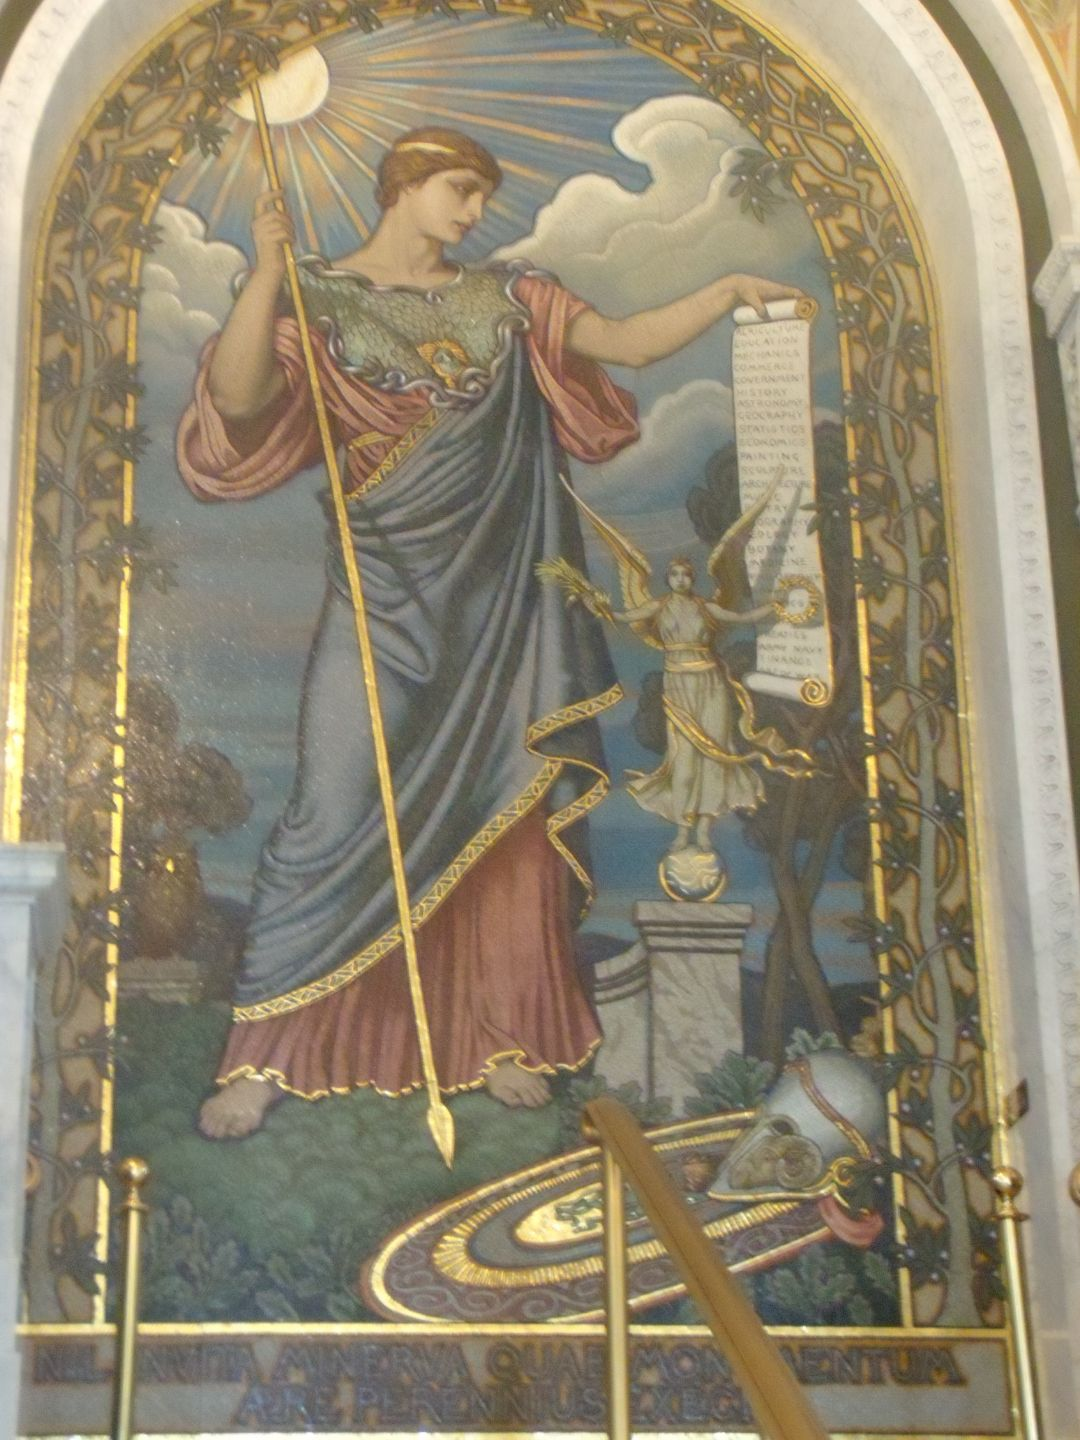 Minerva Mosaic Library of Congress by Elihu Vedder, Full View